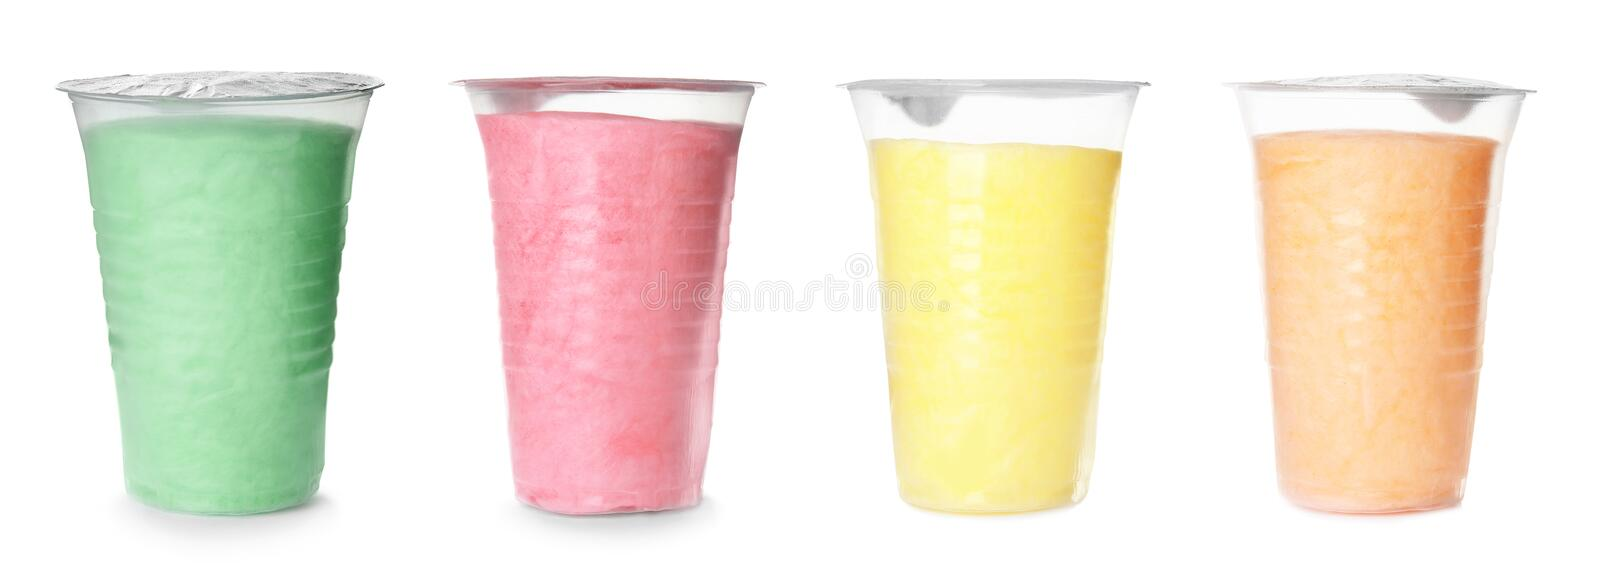 Set of different colorful yummy cotton candy in plastic cups on white royalty free stock photography